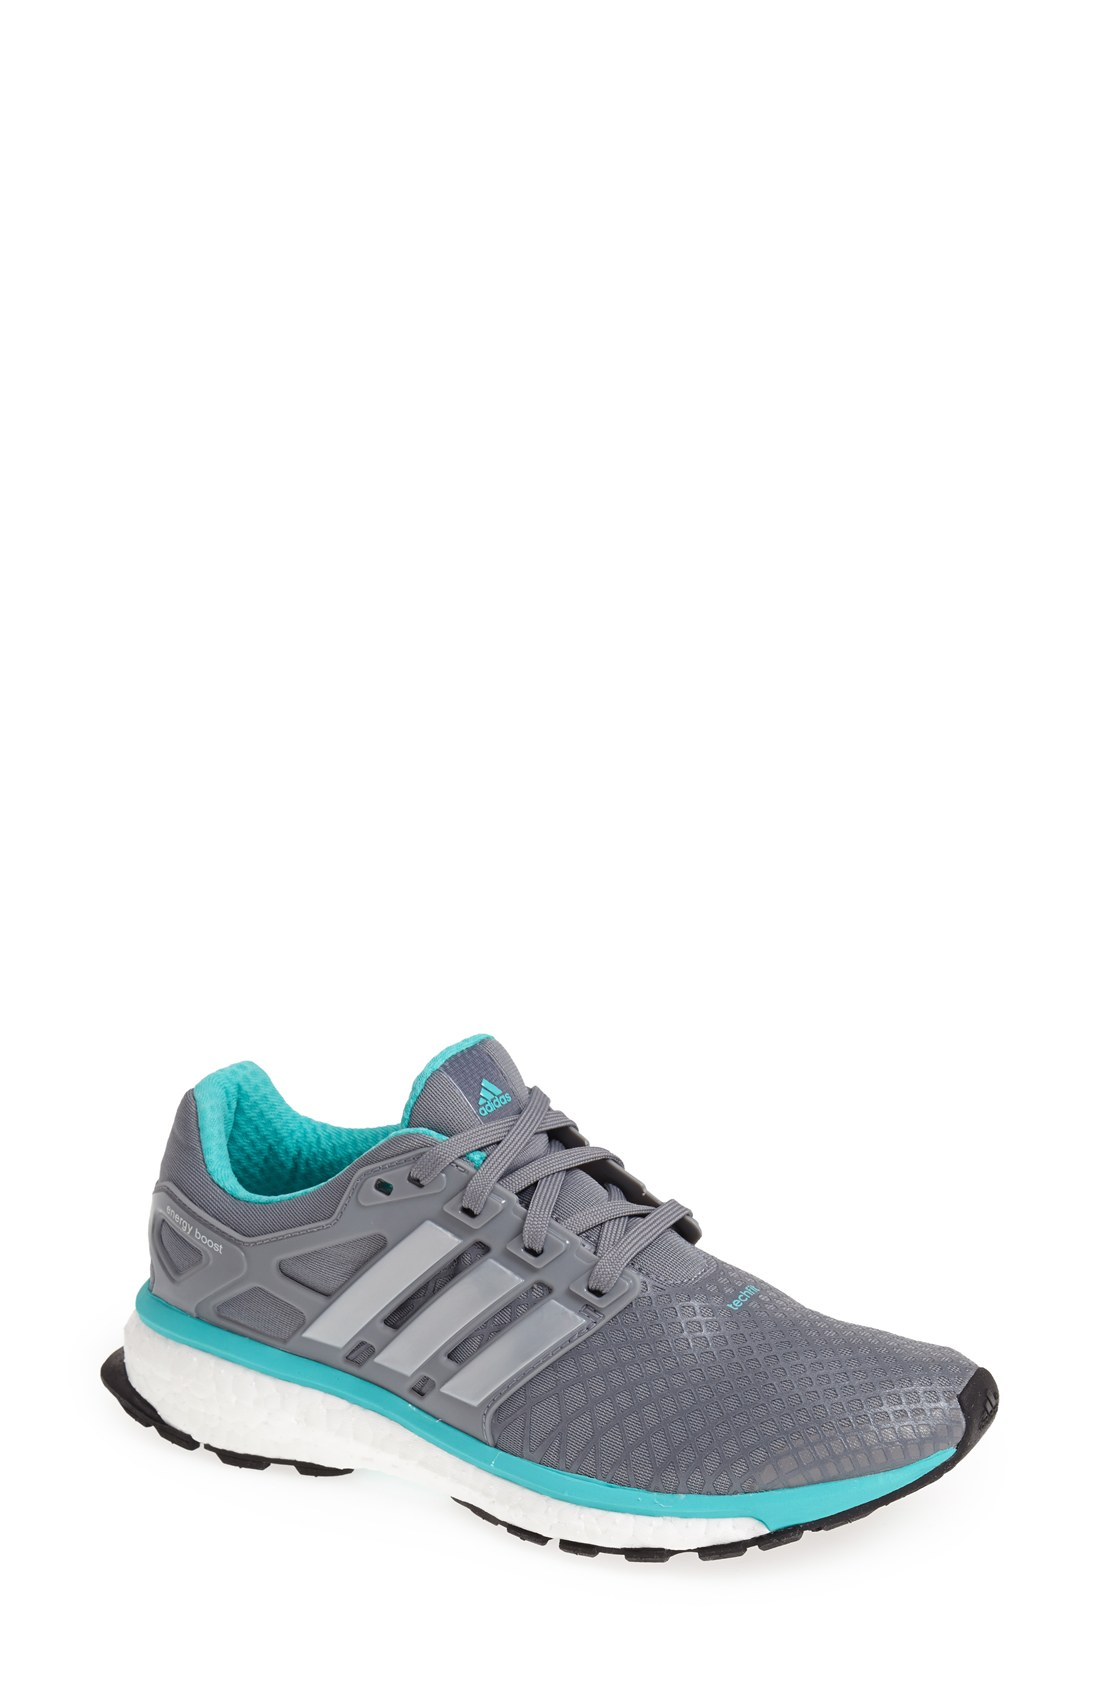 Adidas Techfit Shoes Micoach